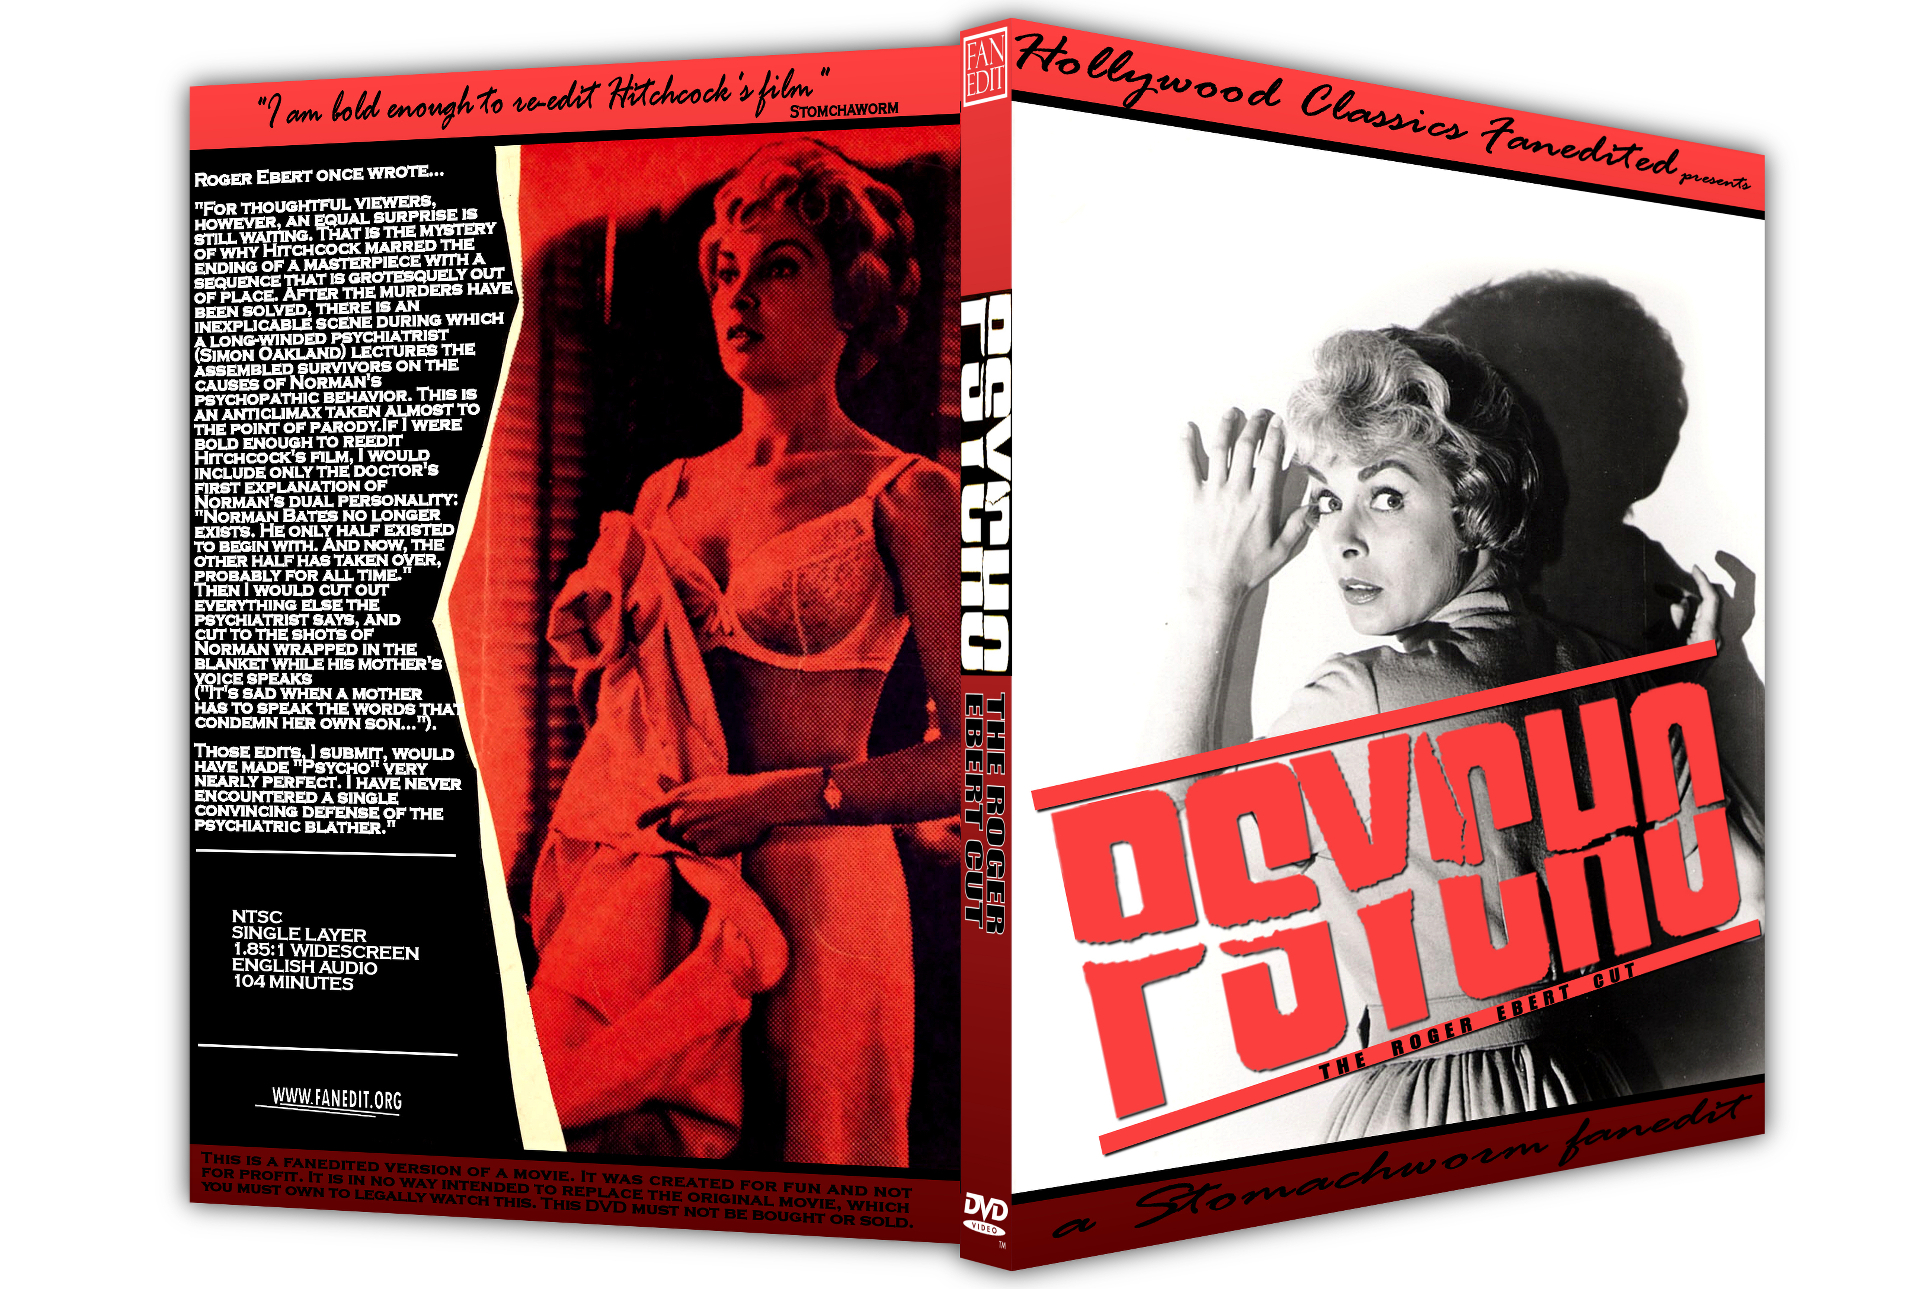 Mockup of a custom DVD box for Stomachwom's Psycho featuring two images from the film and bold red Psycho across the front.